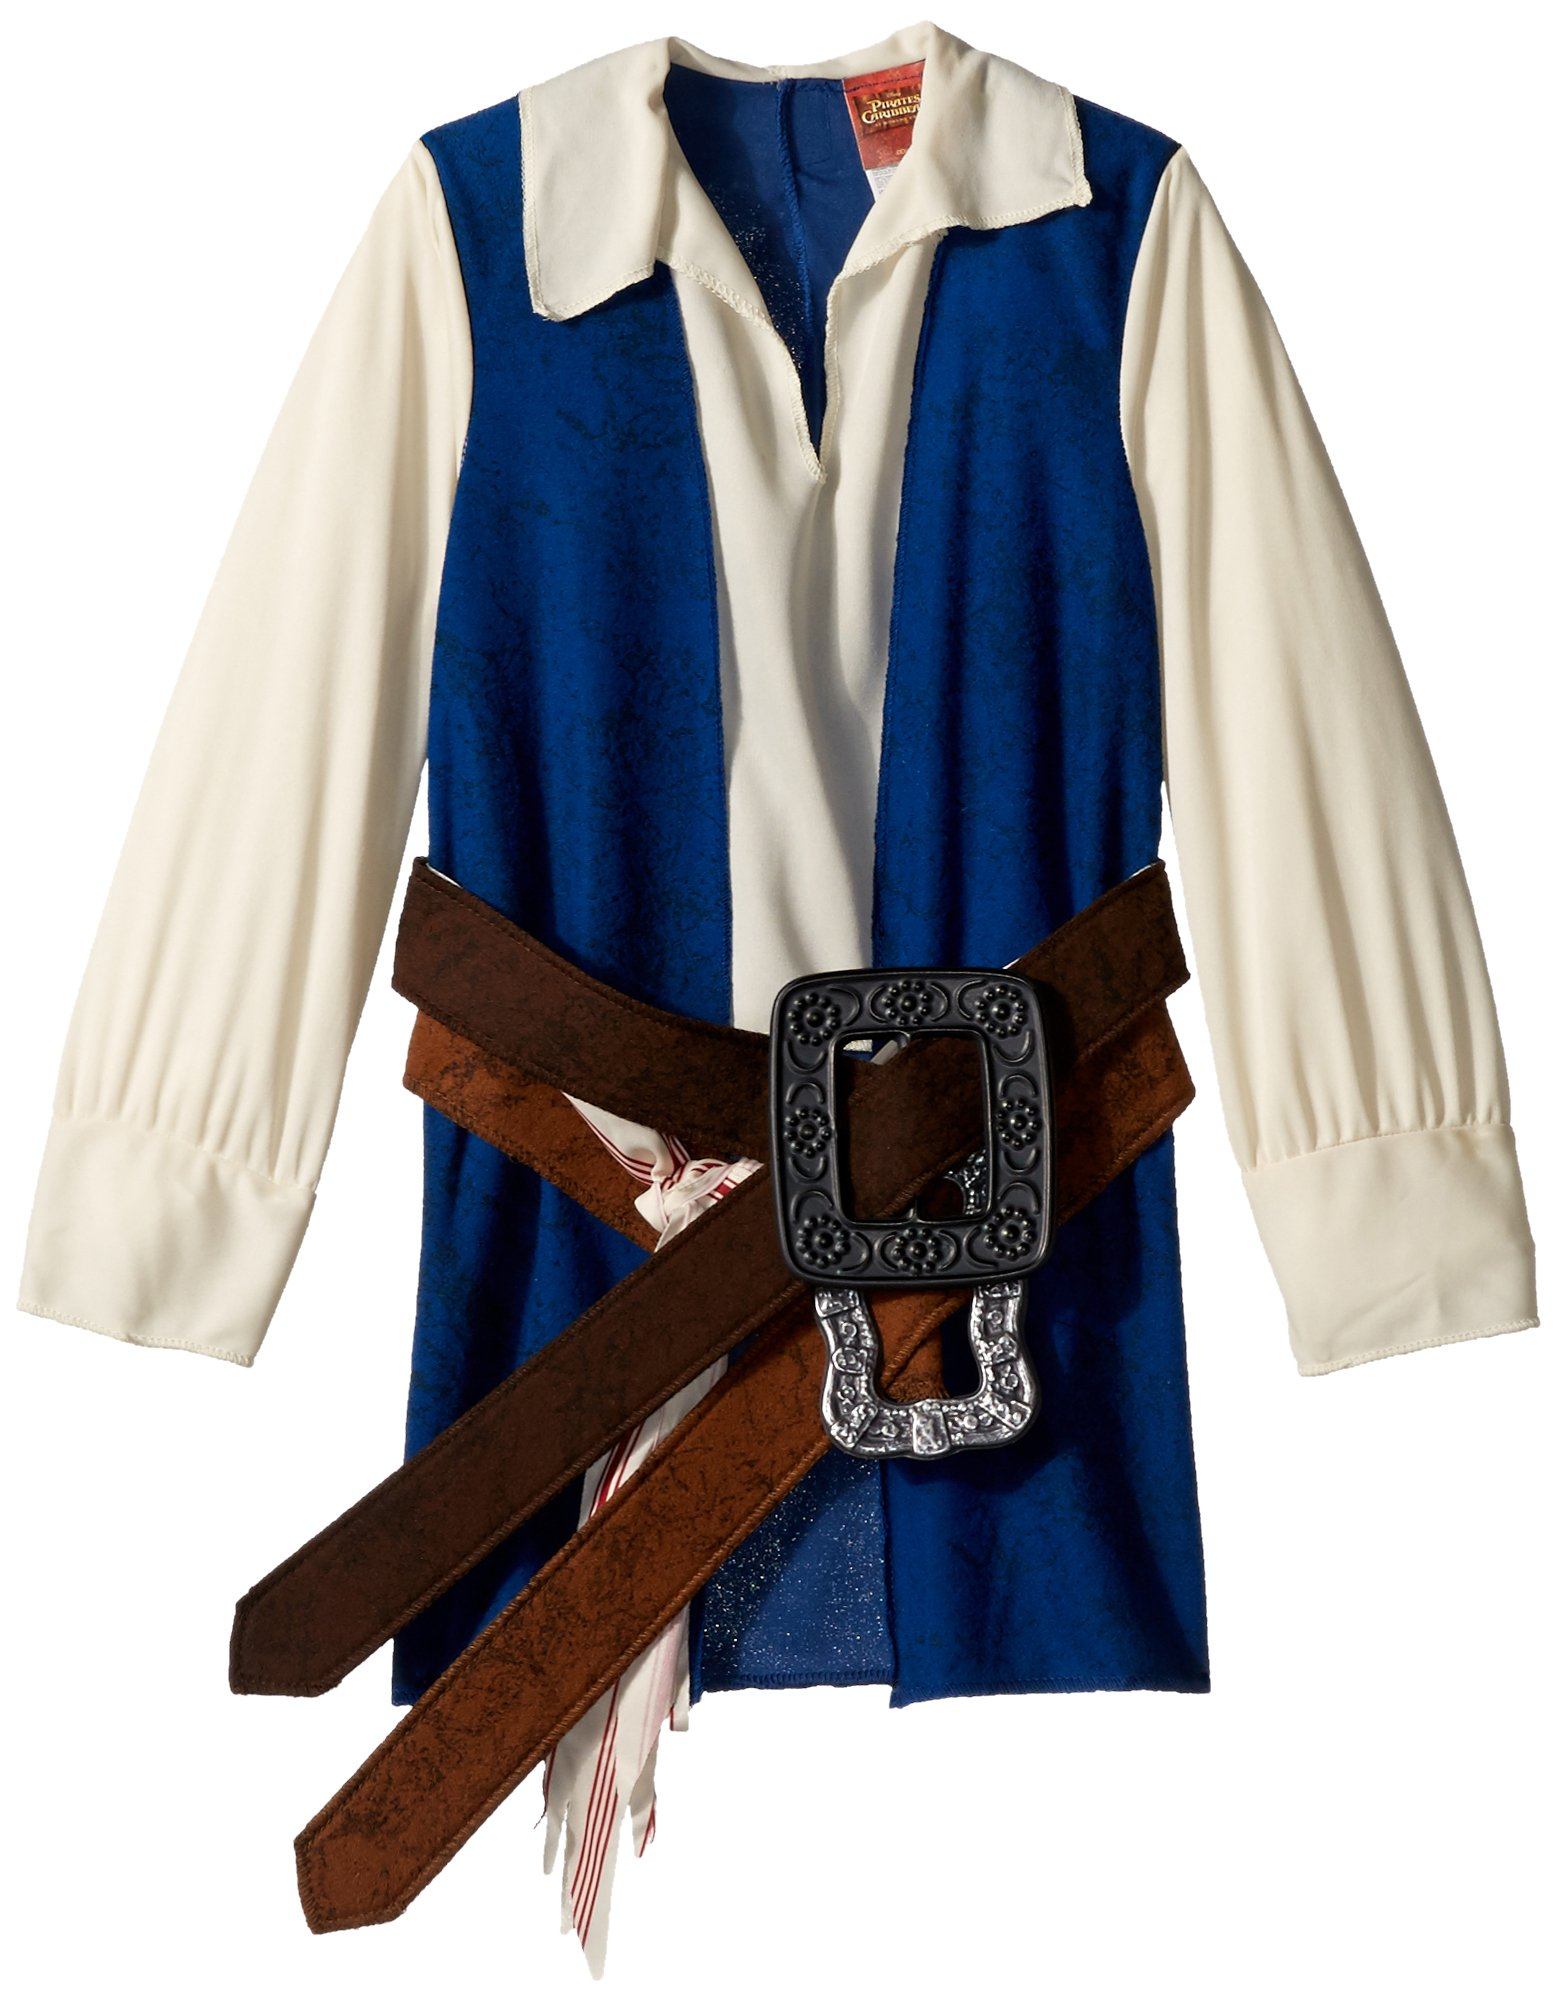 Disney Pirates of The Caribbean Captain Jack Sparrow Prestige Premium Boys Costume, Small/4-6 by Disguise (Image #4)